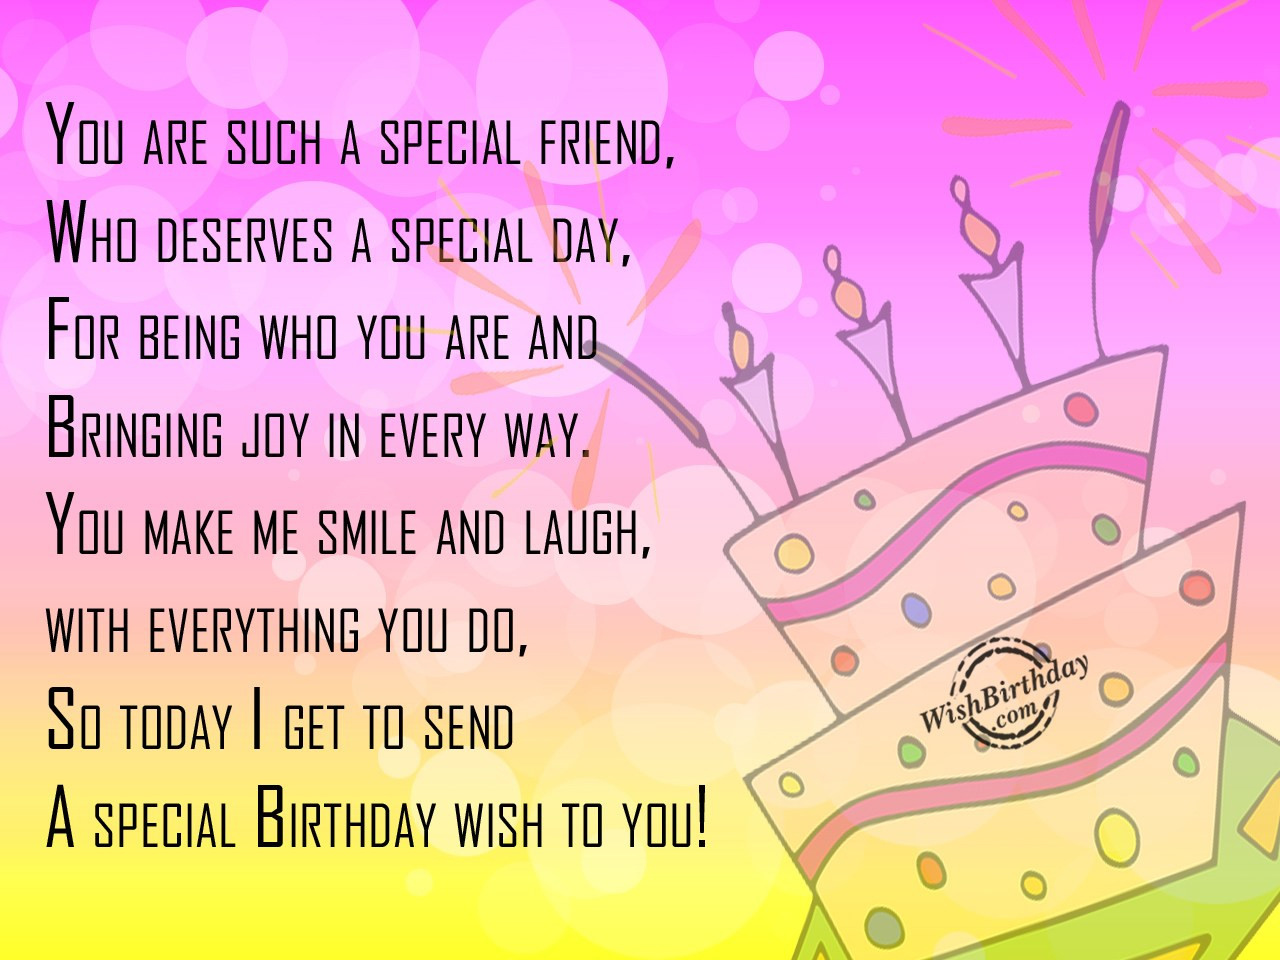 Best ideas about Birthday Wishes For A Special Friend . Save or Pin Birthday Wishes for Best Friend Birthday Now.